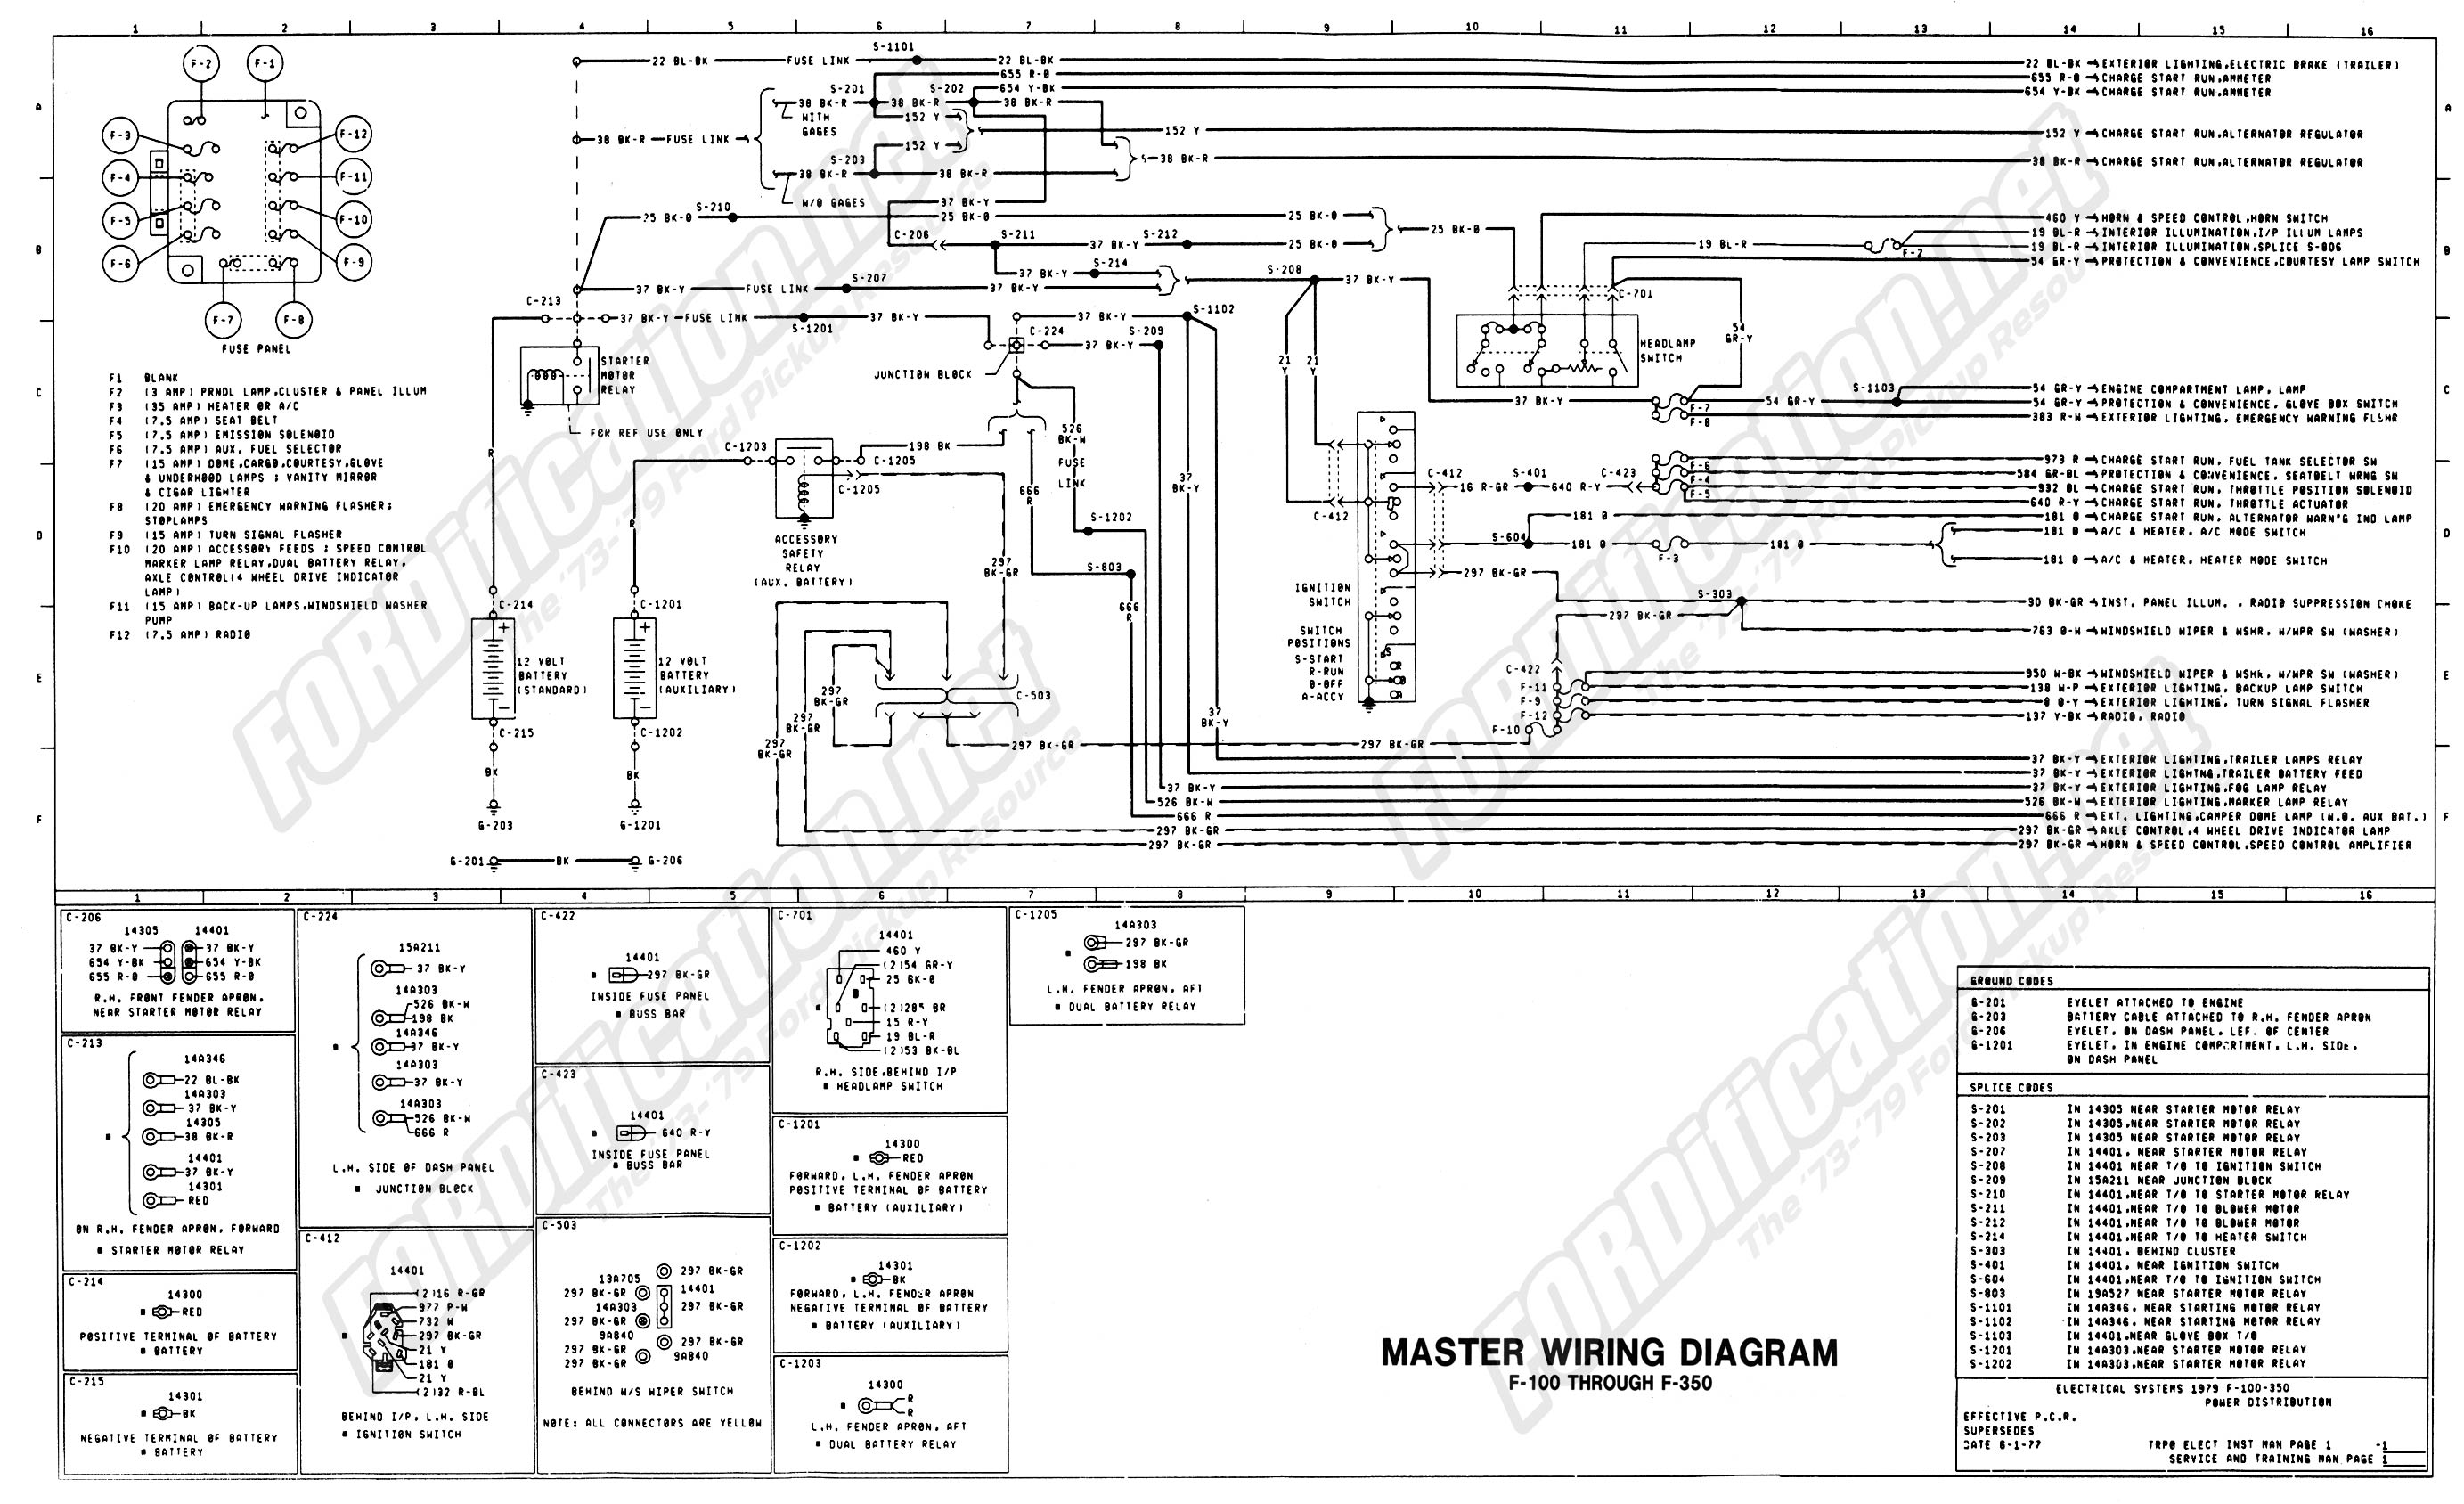 wiring_79master_1of9 1973 1979 ford truck wiring diagrams & schematics fordification net 1979 ford f100 fuse box diagram at mifinder.co